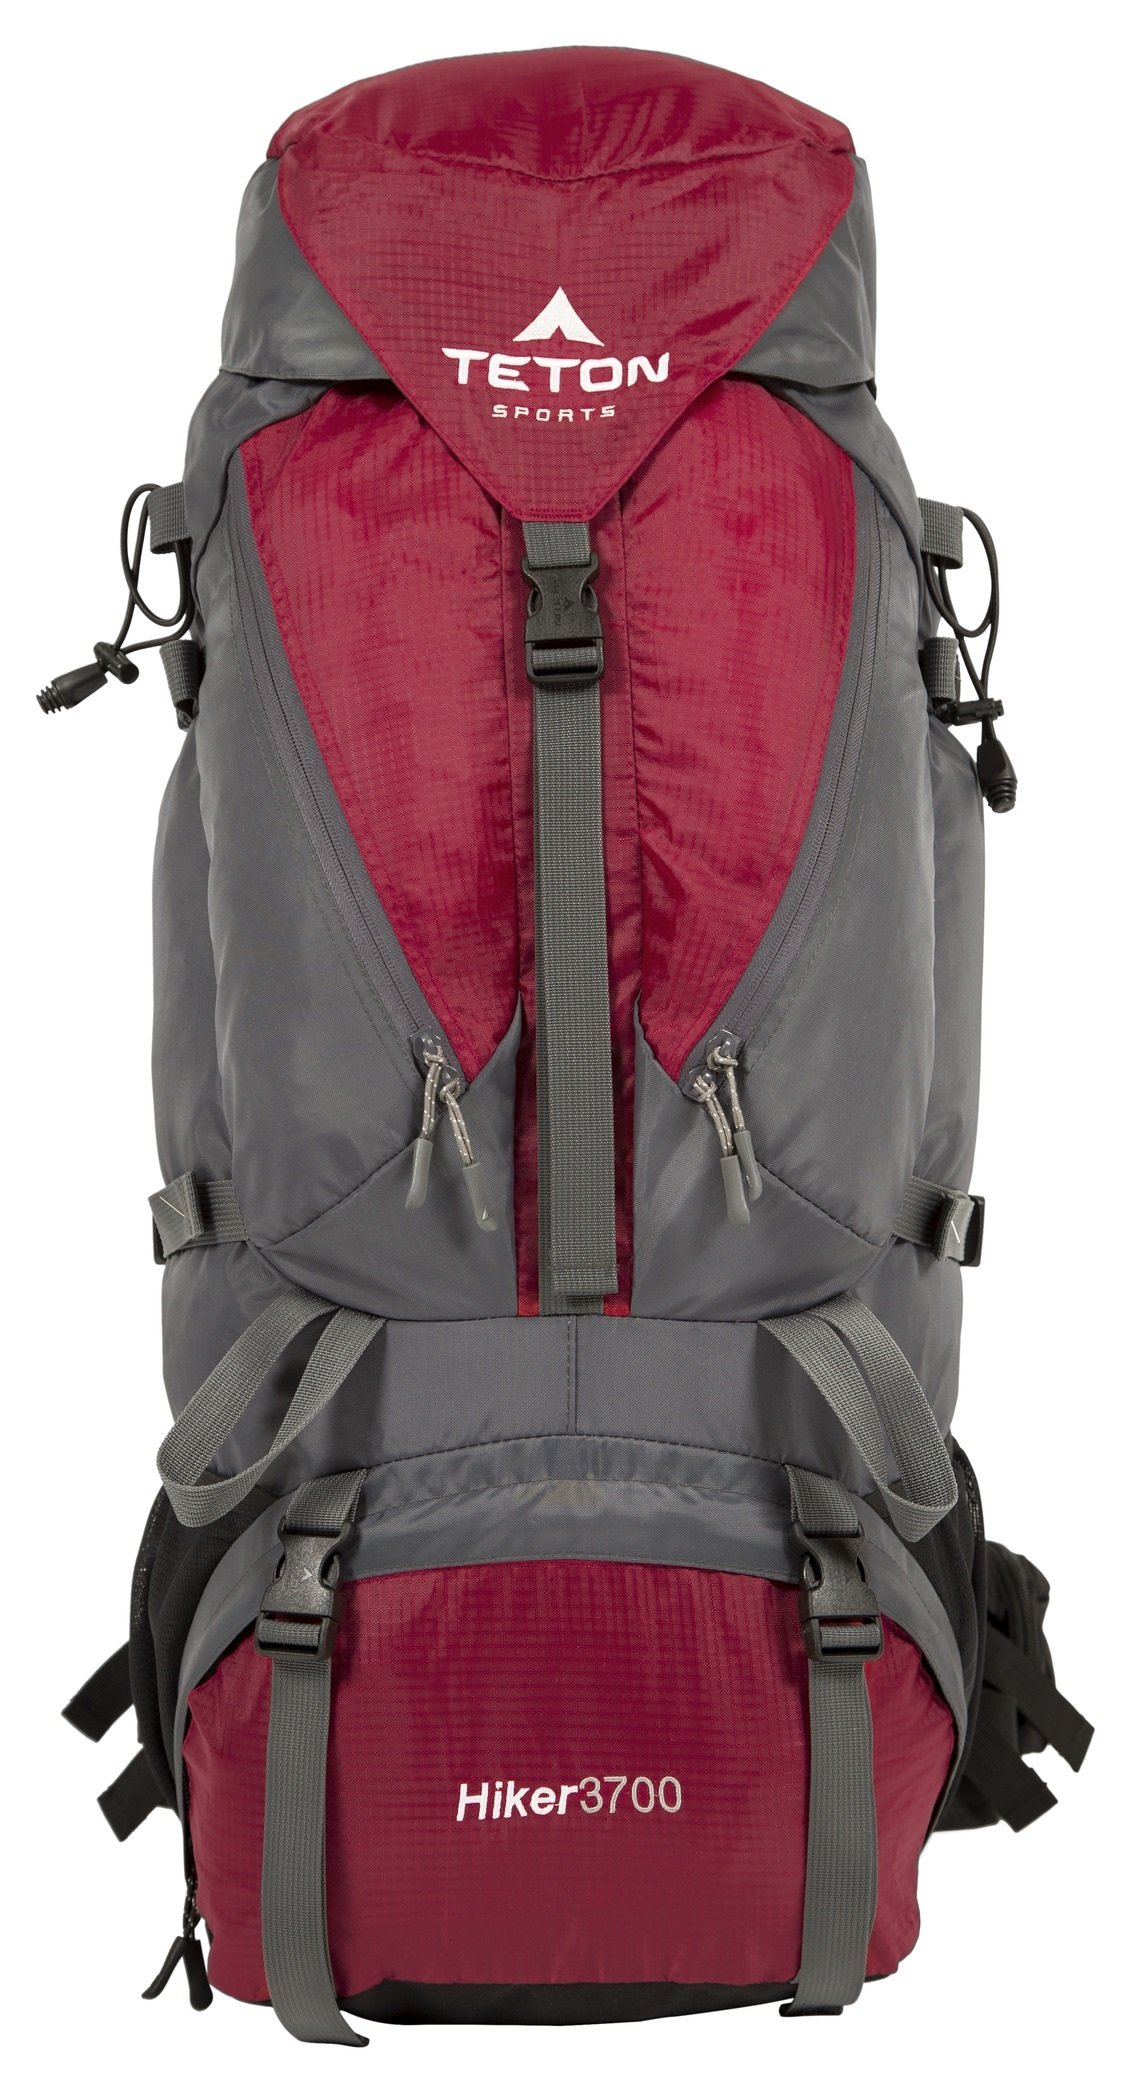 TETON Sports Hiker 3700 Ultralight Internal Frame Backpack - Not Your Basic Backpack; High-Performance Backpack for Hiking, Camping, Travel, and Outdoor Activities; Sewn-In Rain Cover; Red by TETON Sports